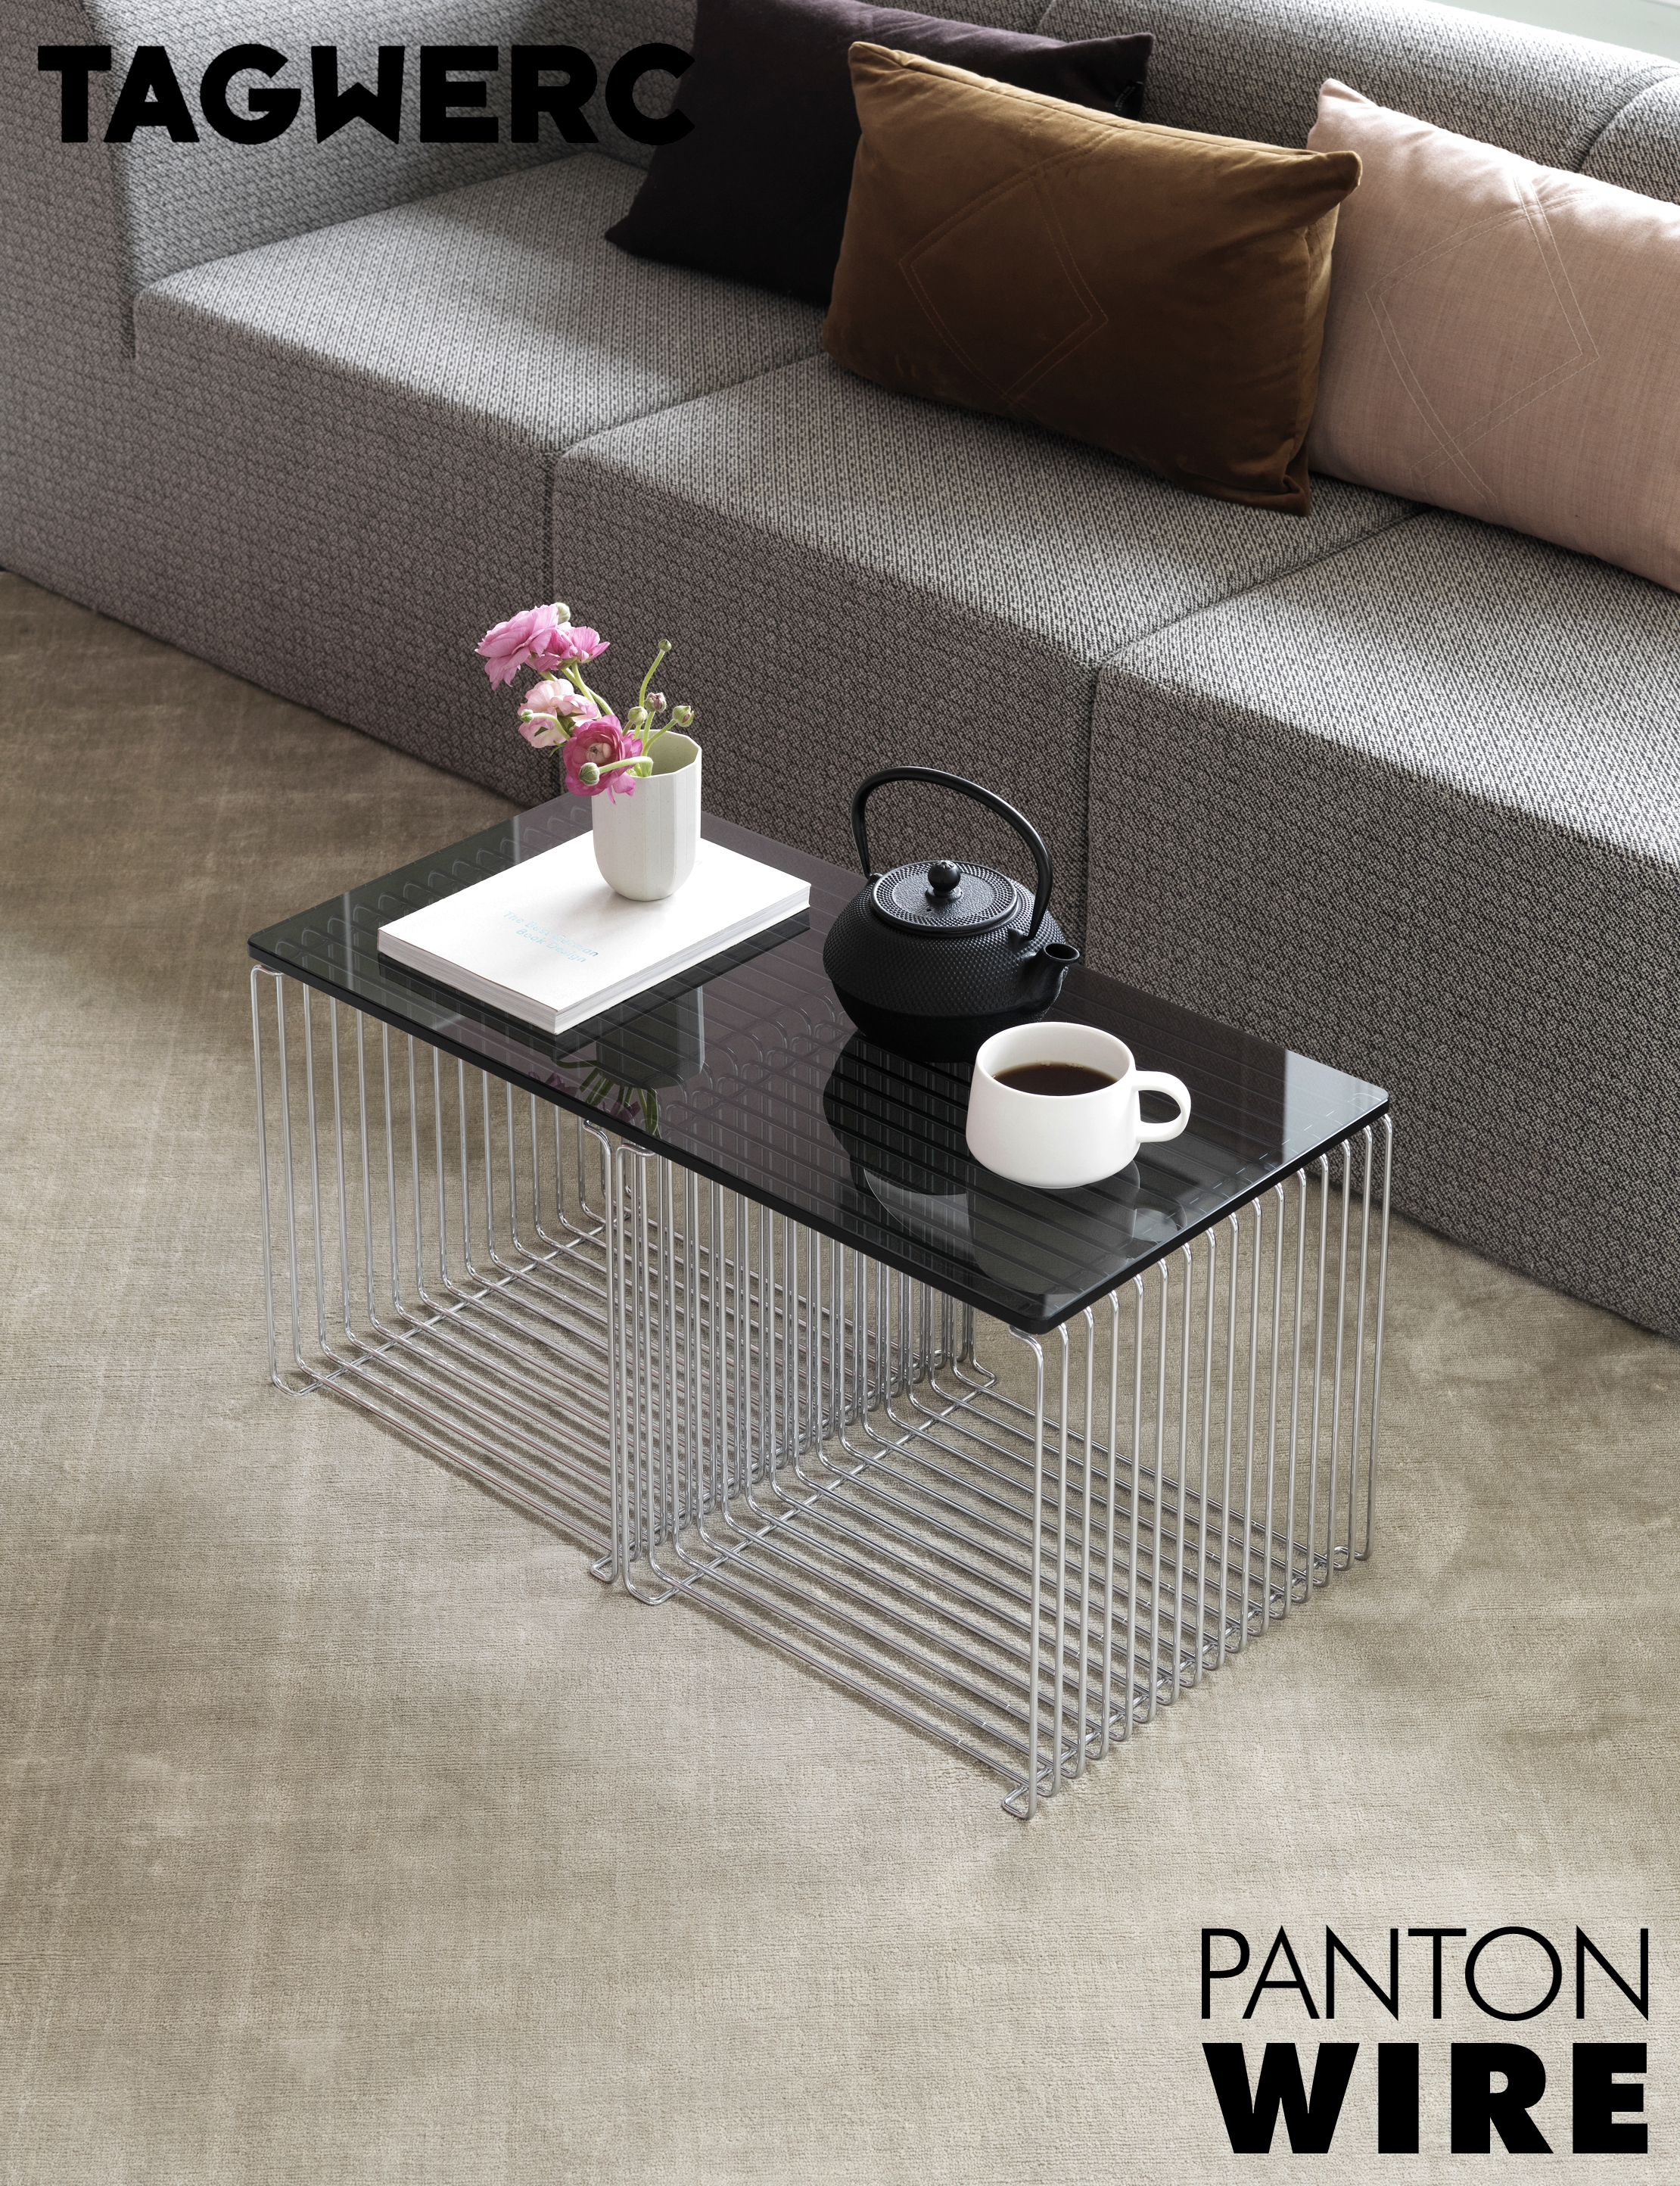 Montana Panton Wire Chrome Metal Wall Shelf Verner Panton